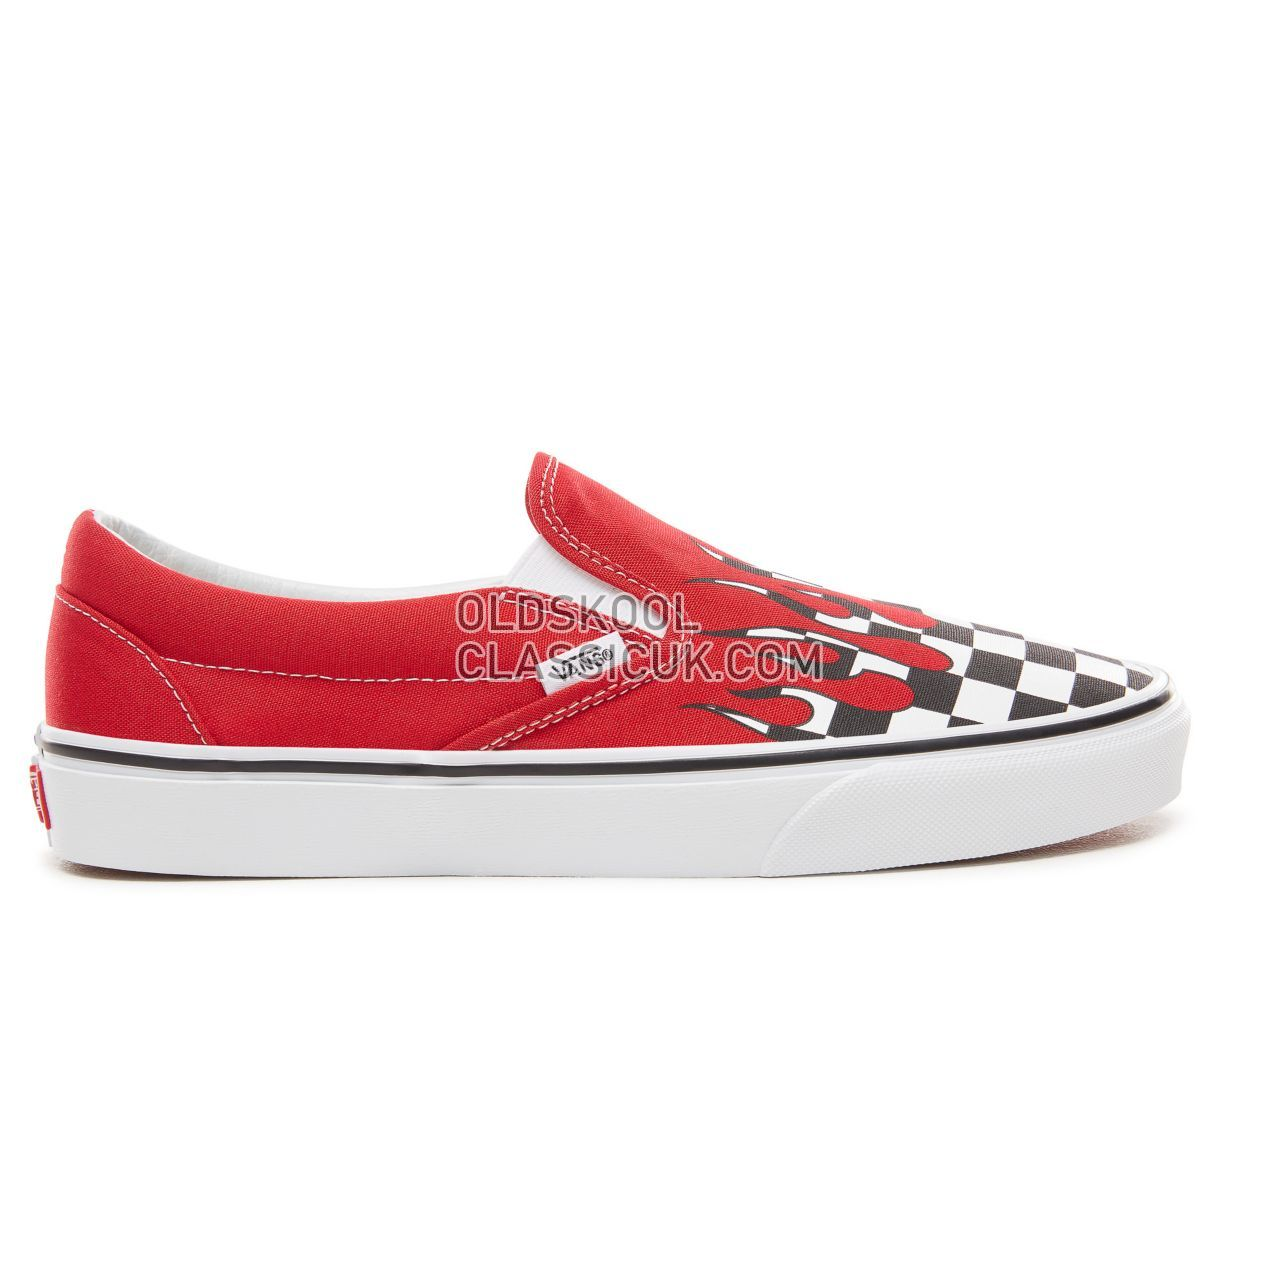 Vans Checker Flame Classic Slip-On Sneakers Mens (Checker Flame) Racing Red/True White VA38F7RX5 Shoes